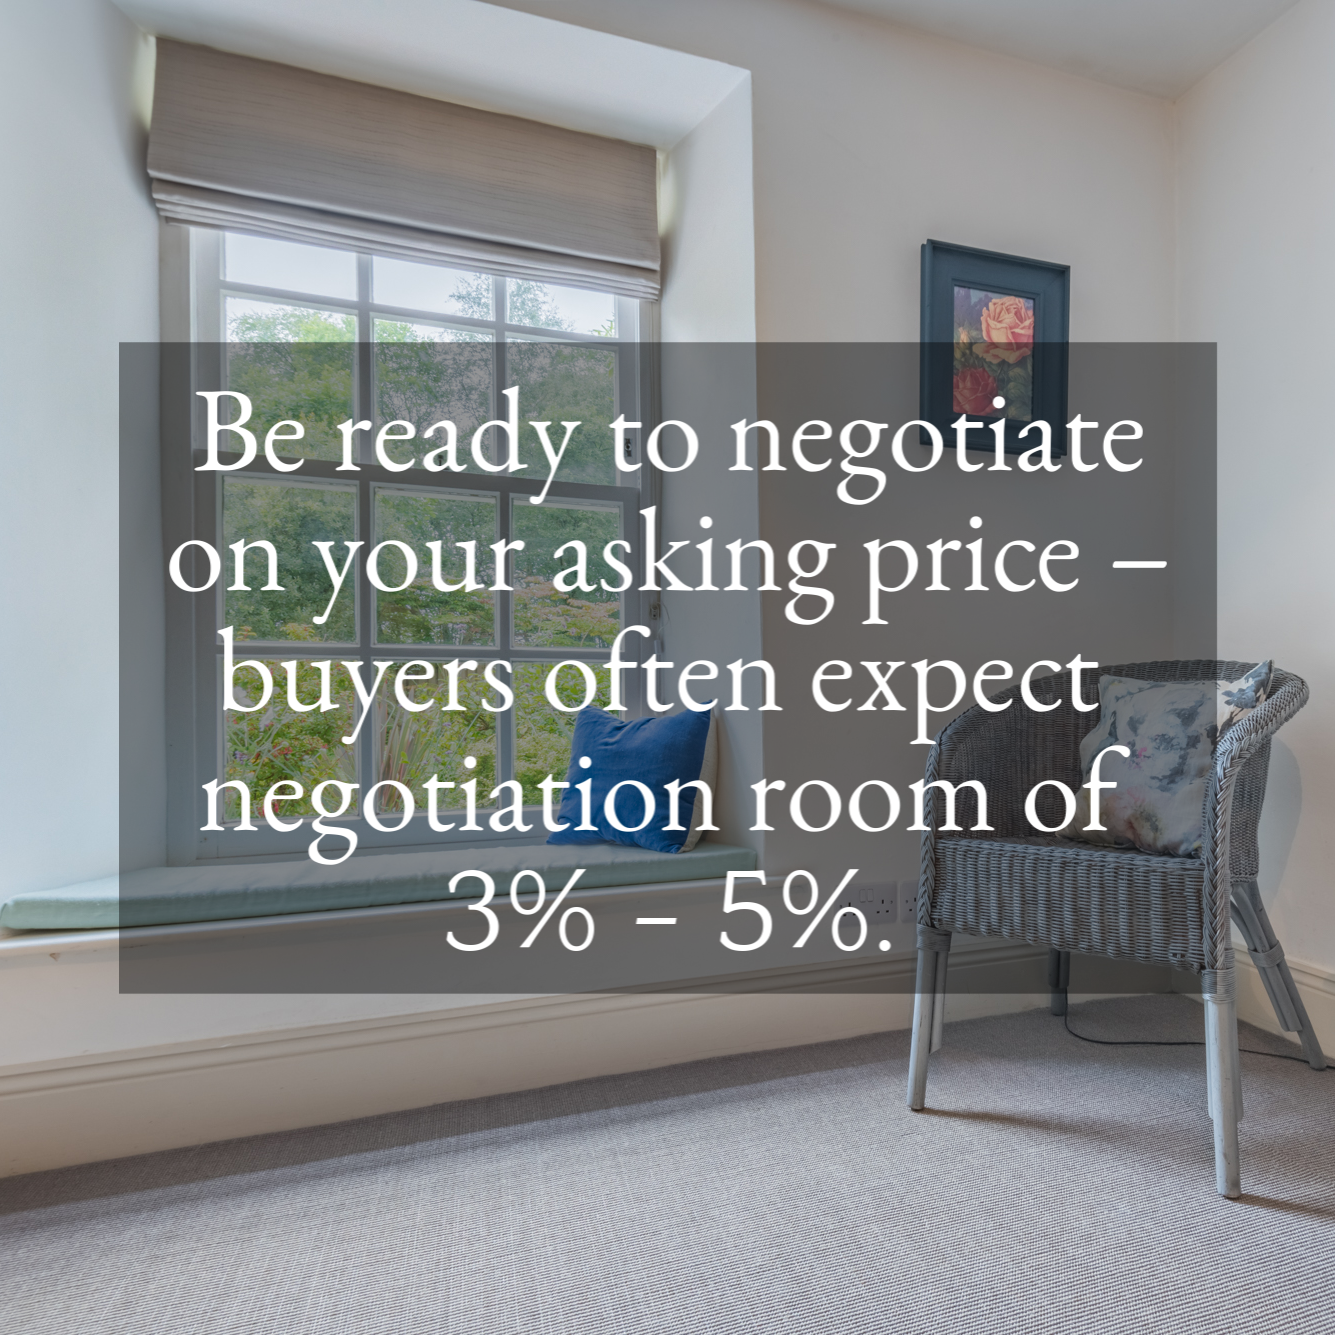 tg10-be-ready-to-negotiate-on-your-asking-price